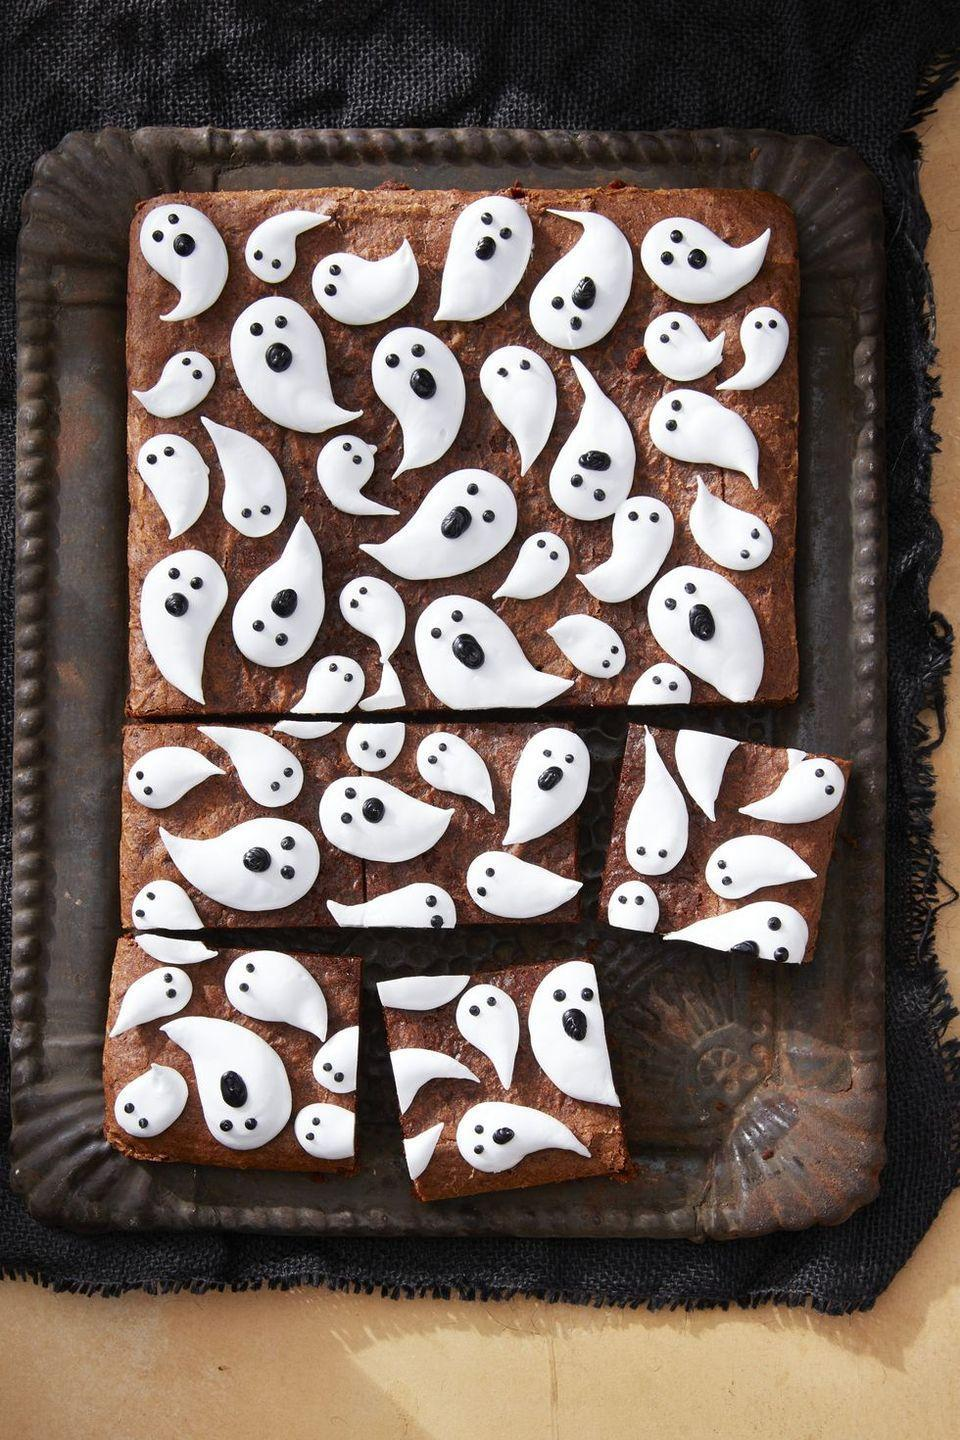 """<p>Kids will love piping the friendly marshmallow ghosts on top of these brownies. </p><p><em><a href=""""https://www.countryliving.com/food-drinks/a28943165/marshmallow-ghost-brownies-recipe/"""" rel=""""nofollow noopener"""" target=""""_blank"""" data-ylk=""""slk:Get the recipe from Country Living »"""" class=""""link rapid-noclick-resp"""">Get the recipe from Country Living »</a></em></p>"""